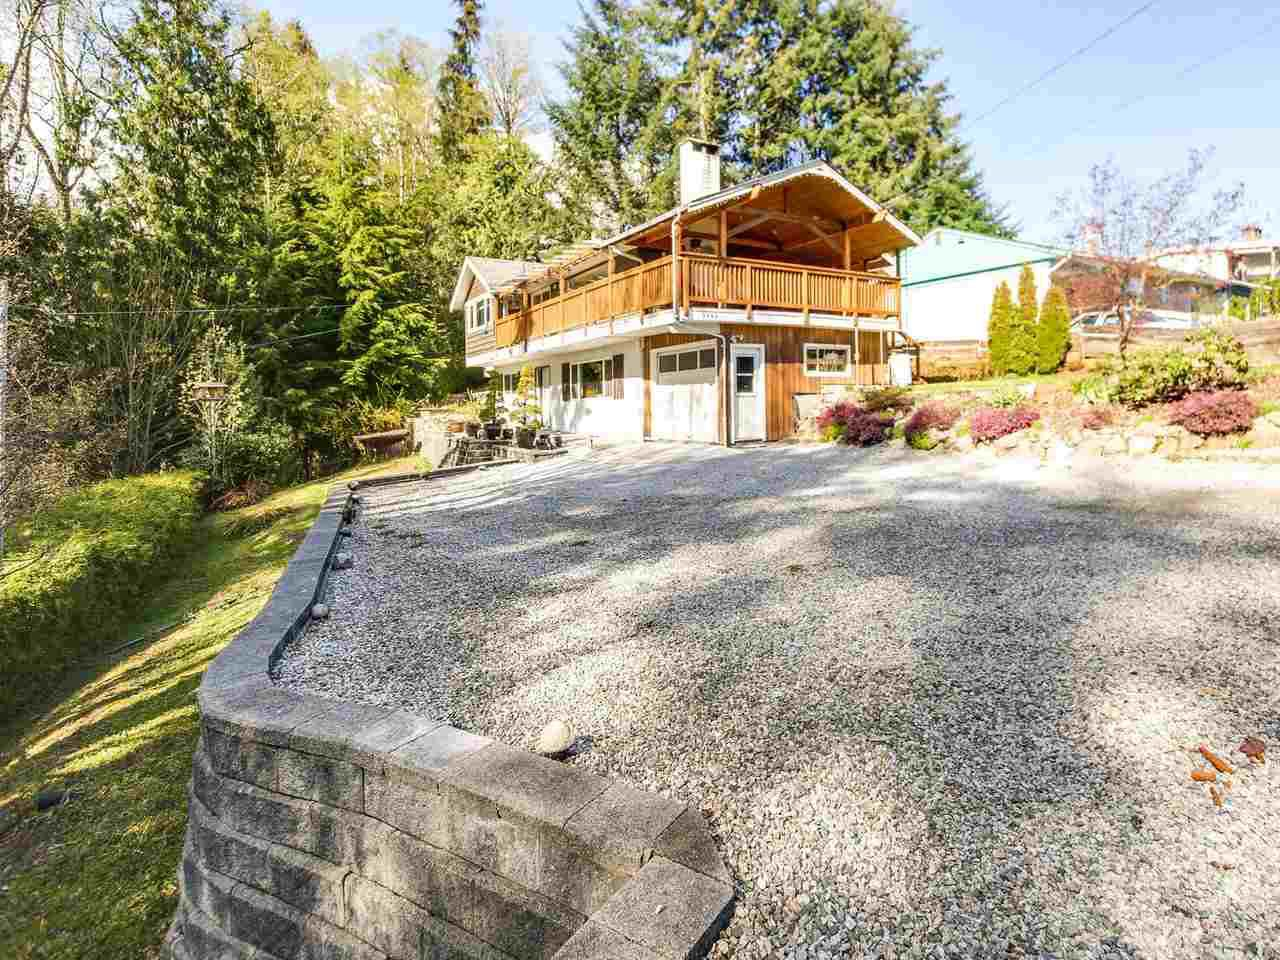 Main Photo: 1905 RHODENA Avenue in Coquitlam: Central Coquitlam House for sale : MLS®# R2289621